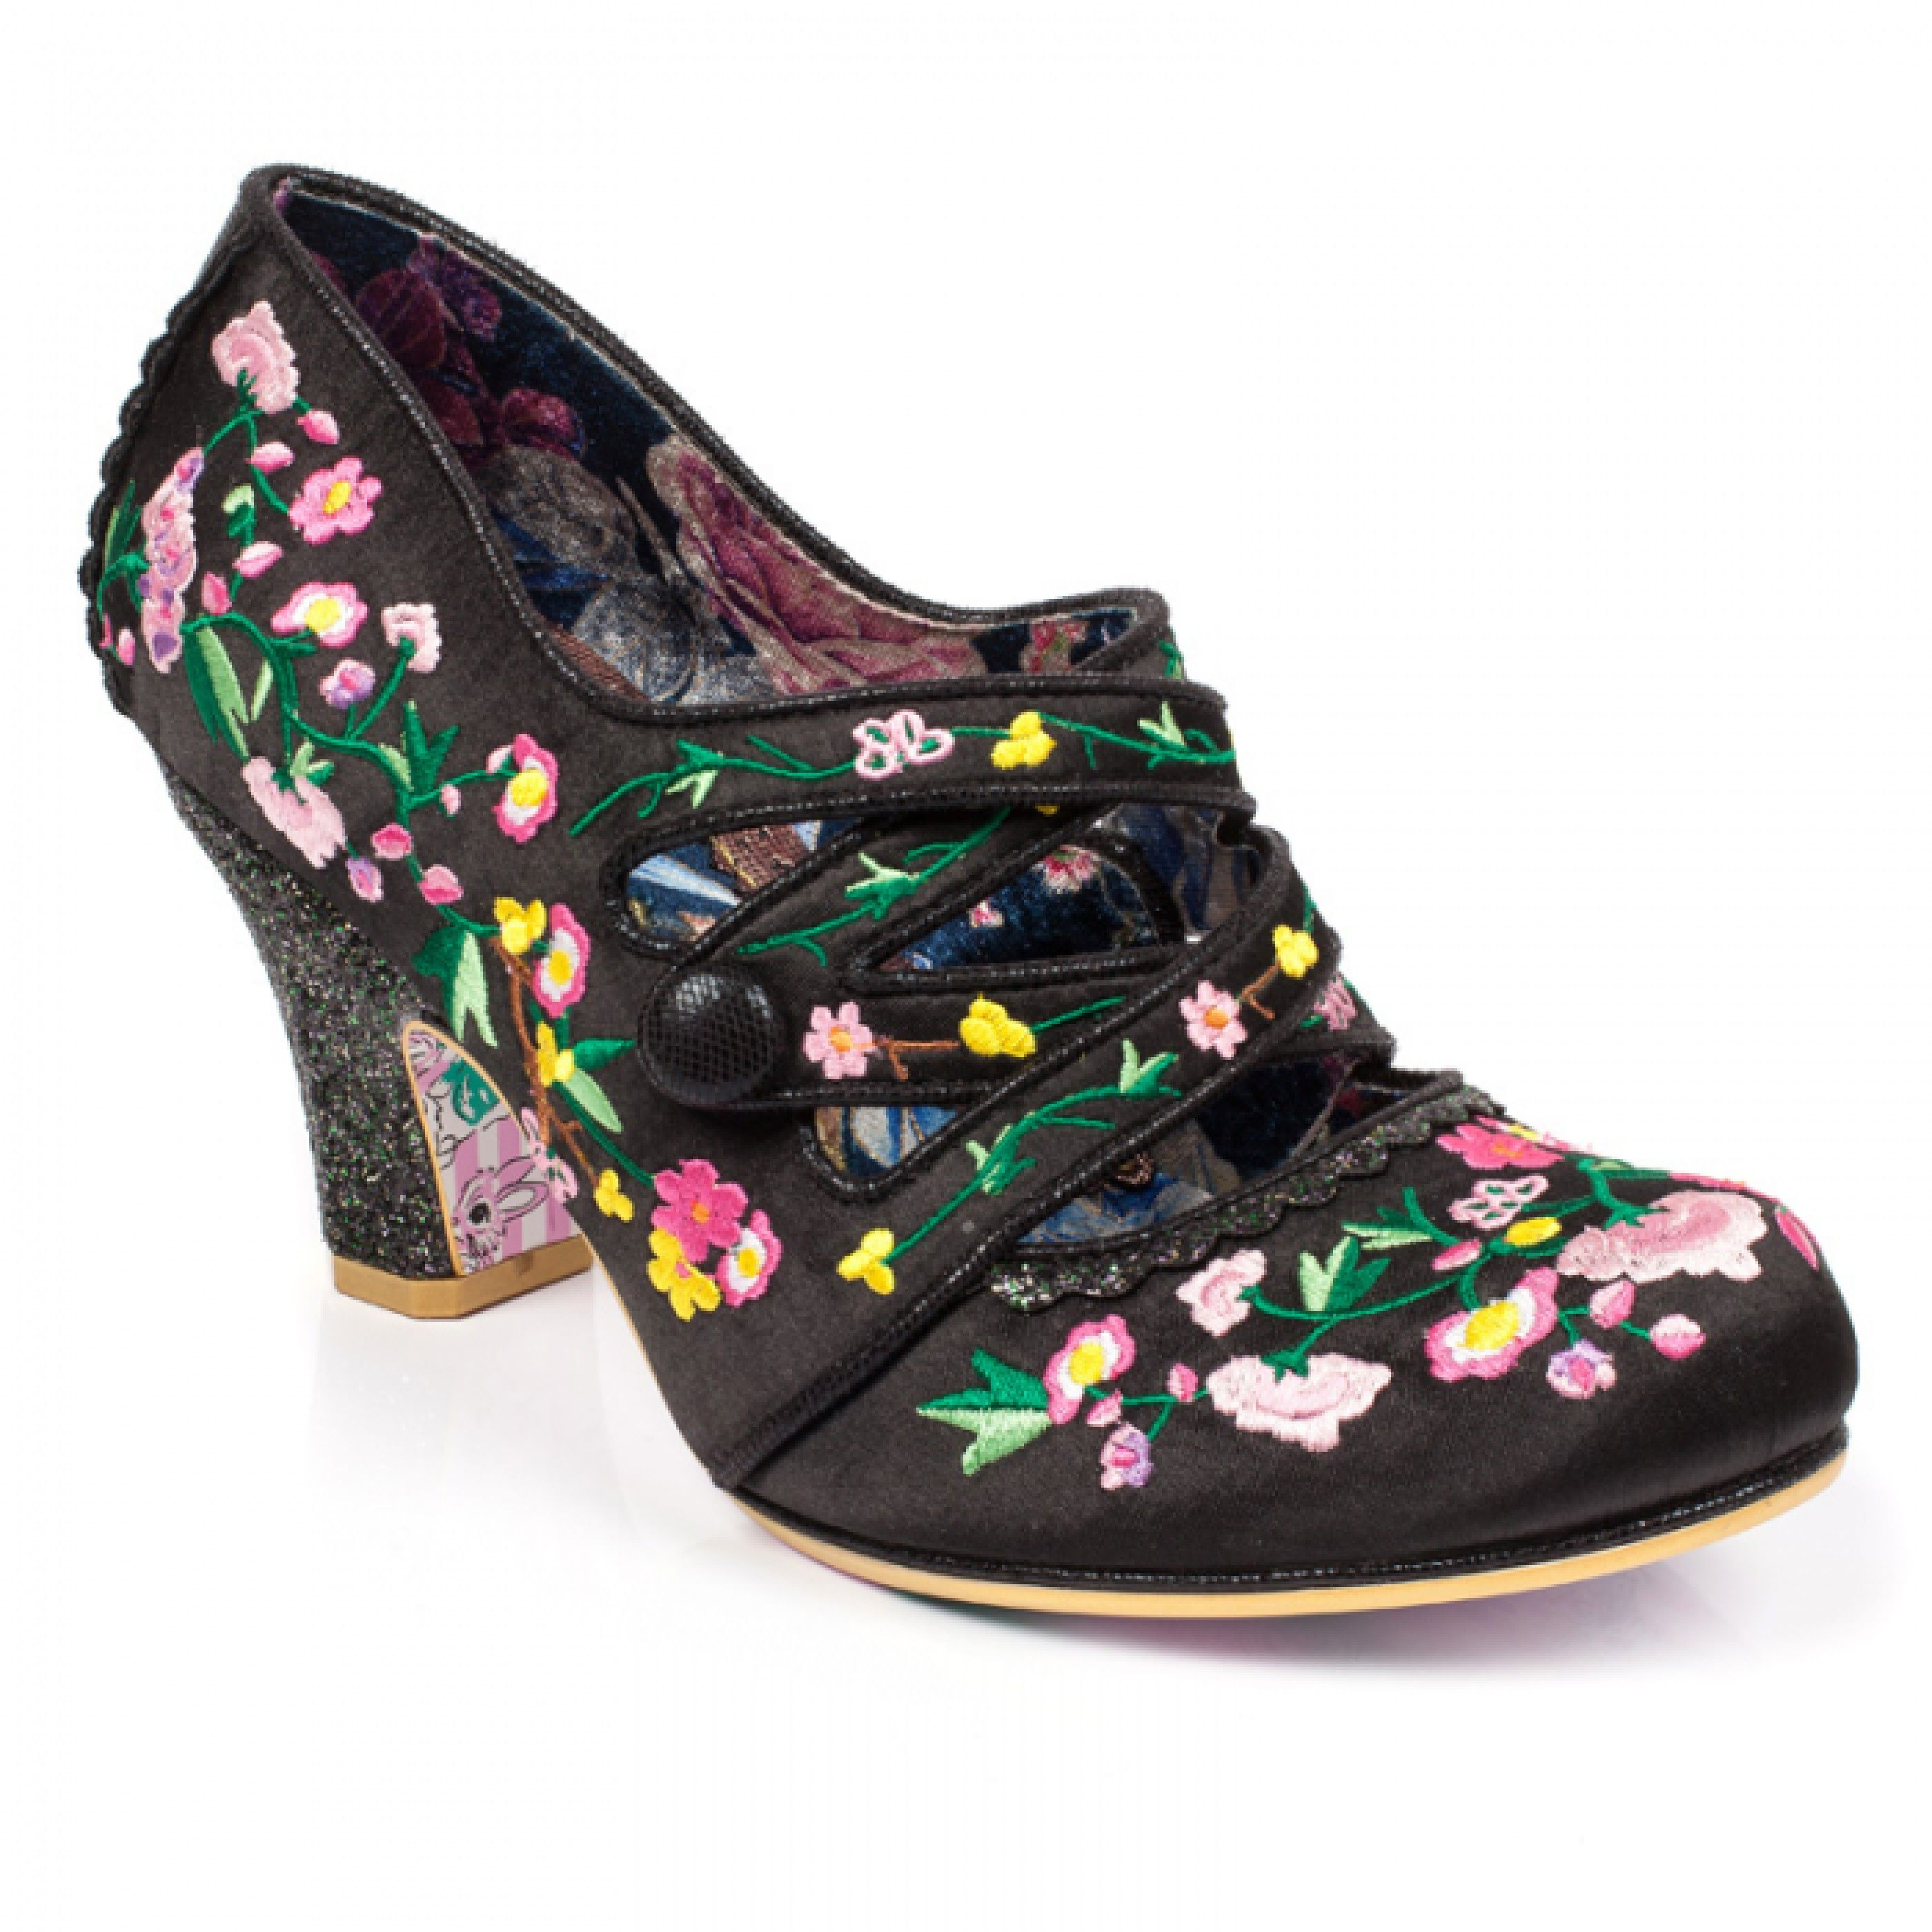 8dc8057f46a In Bloom. In Bloom Irregular Choice ...